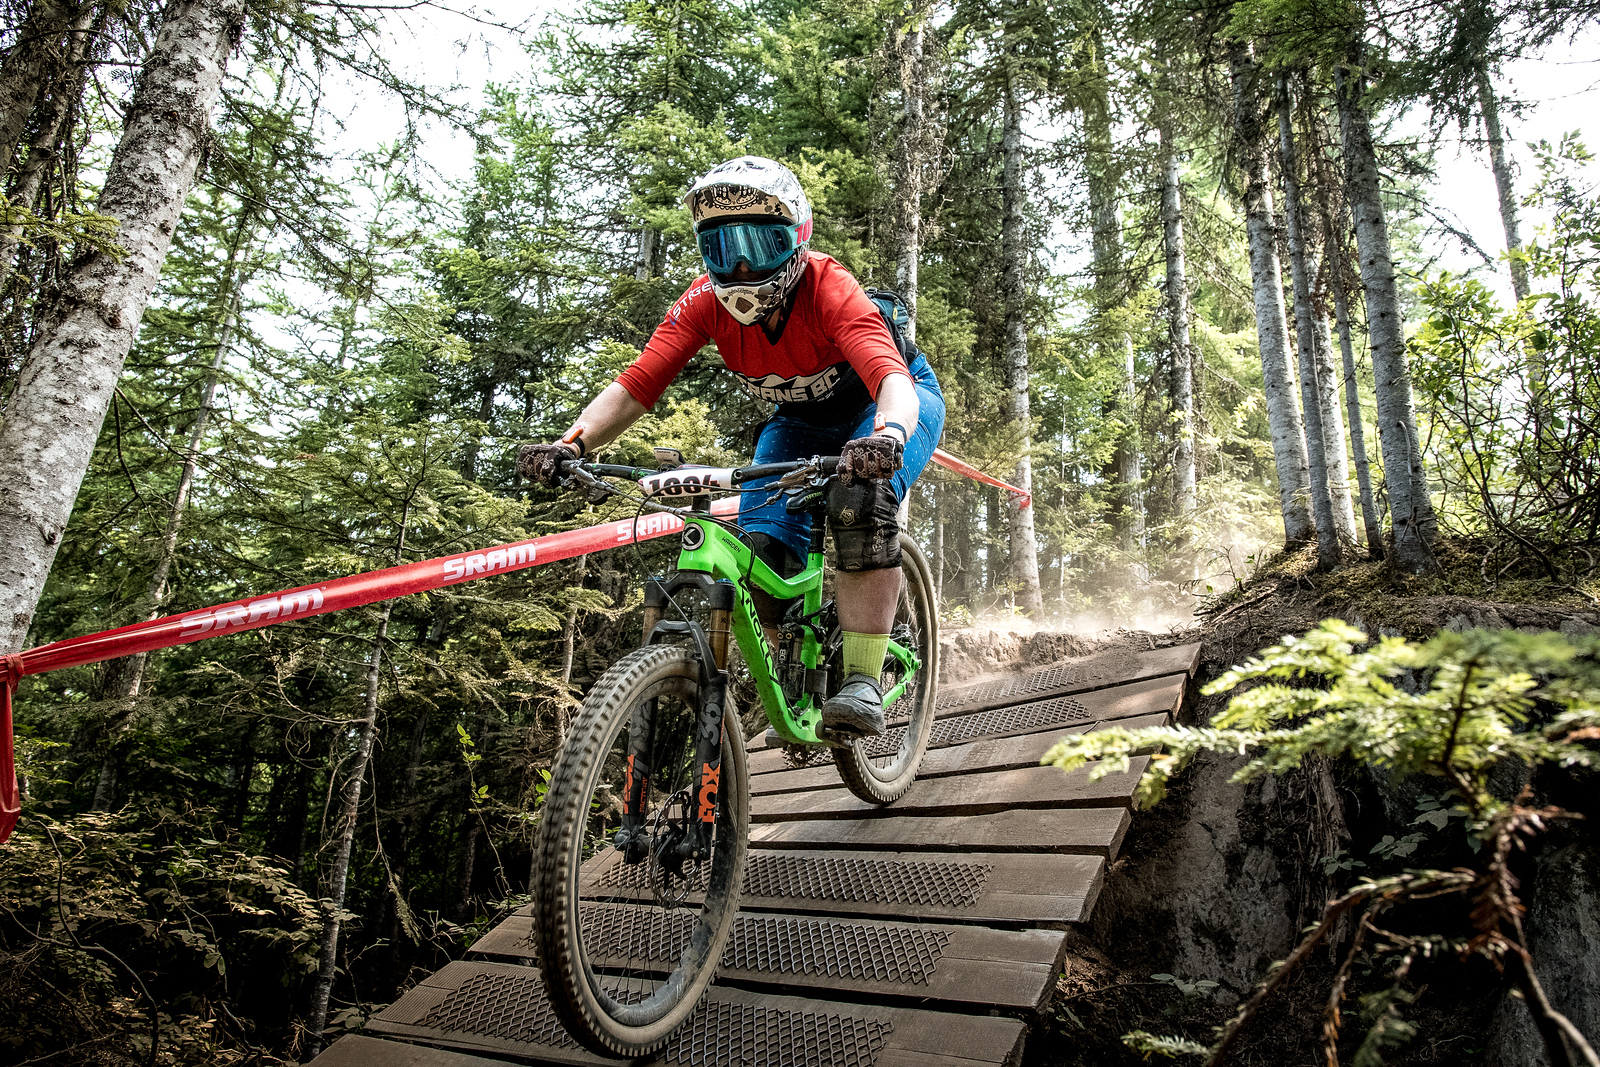 Jaclyn Jeffrey. Bell Helmets Canadian Open Challenger Enduro presented by CamelBak. Crankworx Whistler 2017. Photo by: Scott Robarts